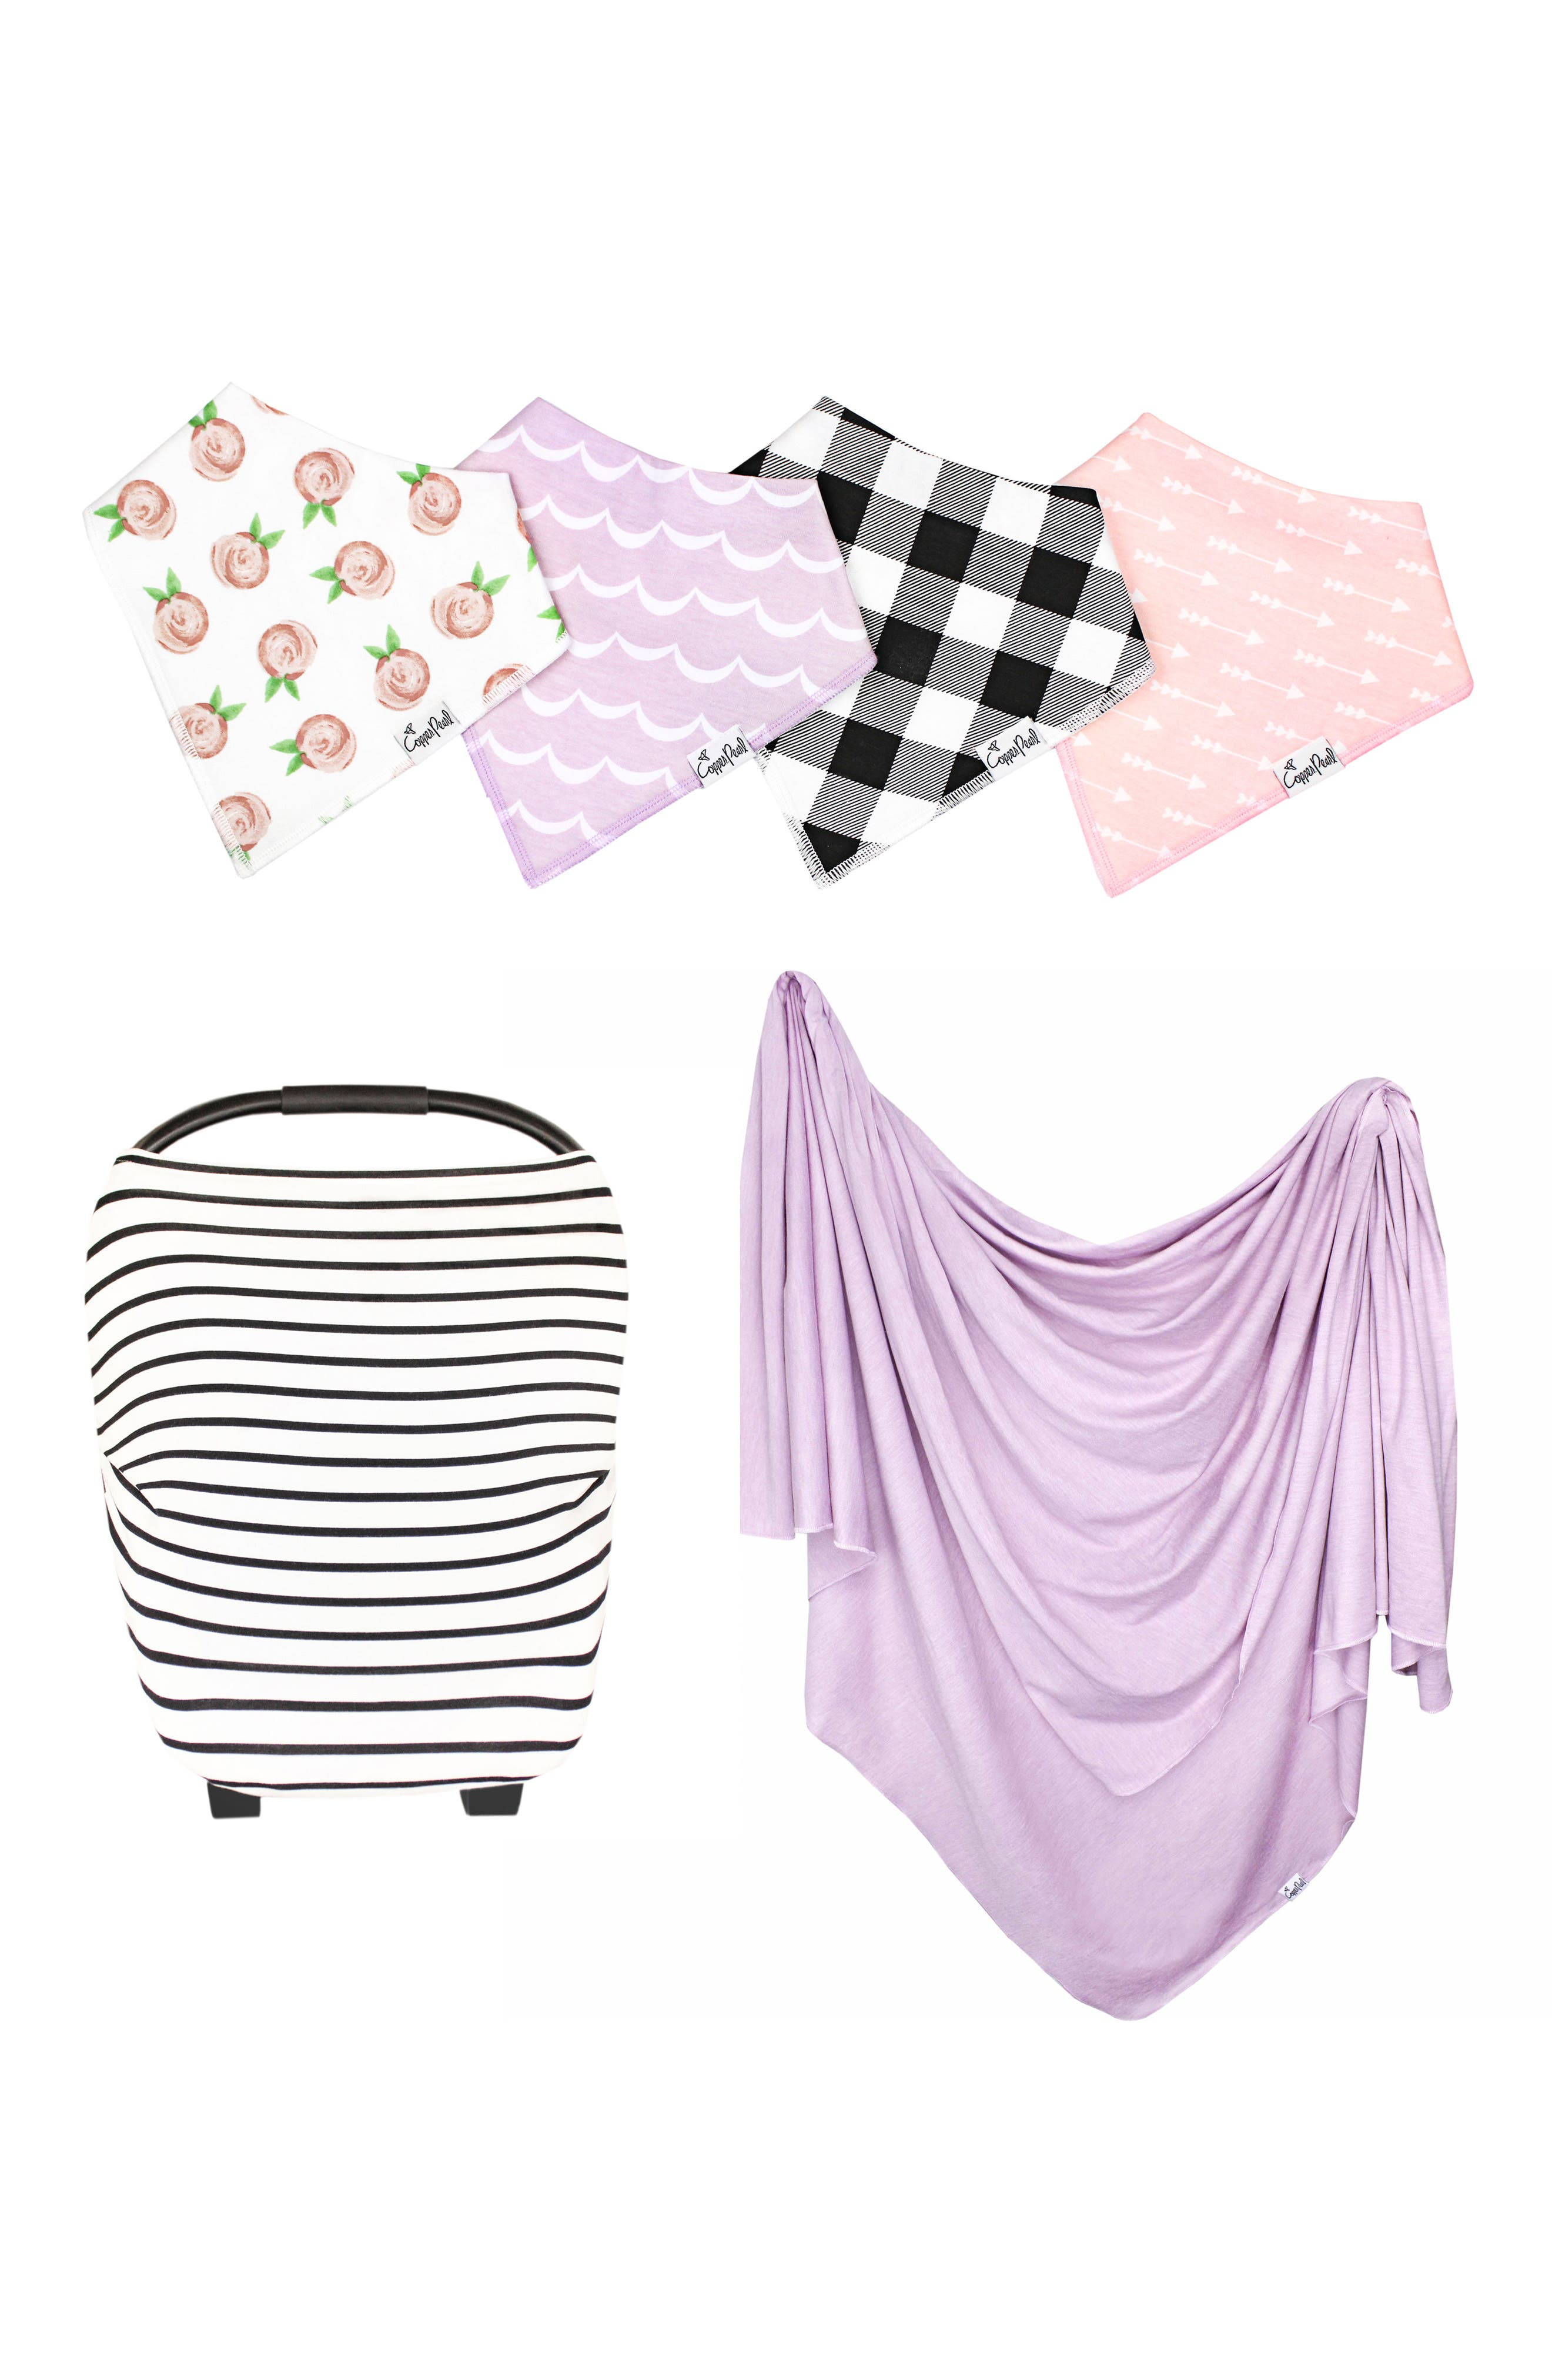 Lily Bib, Multiuse Cover & Swaddle Blanket Gift Set,                         Main,                         color, LILY